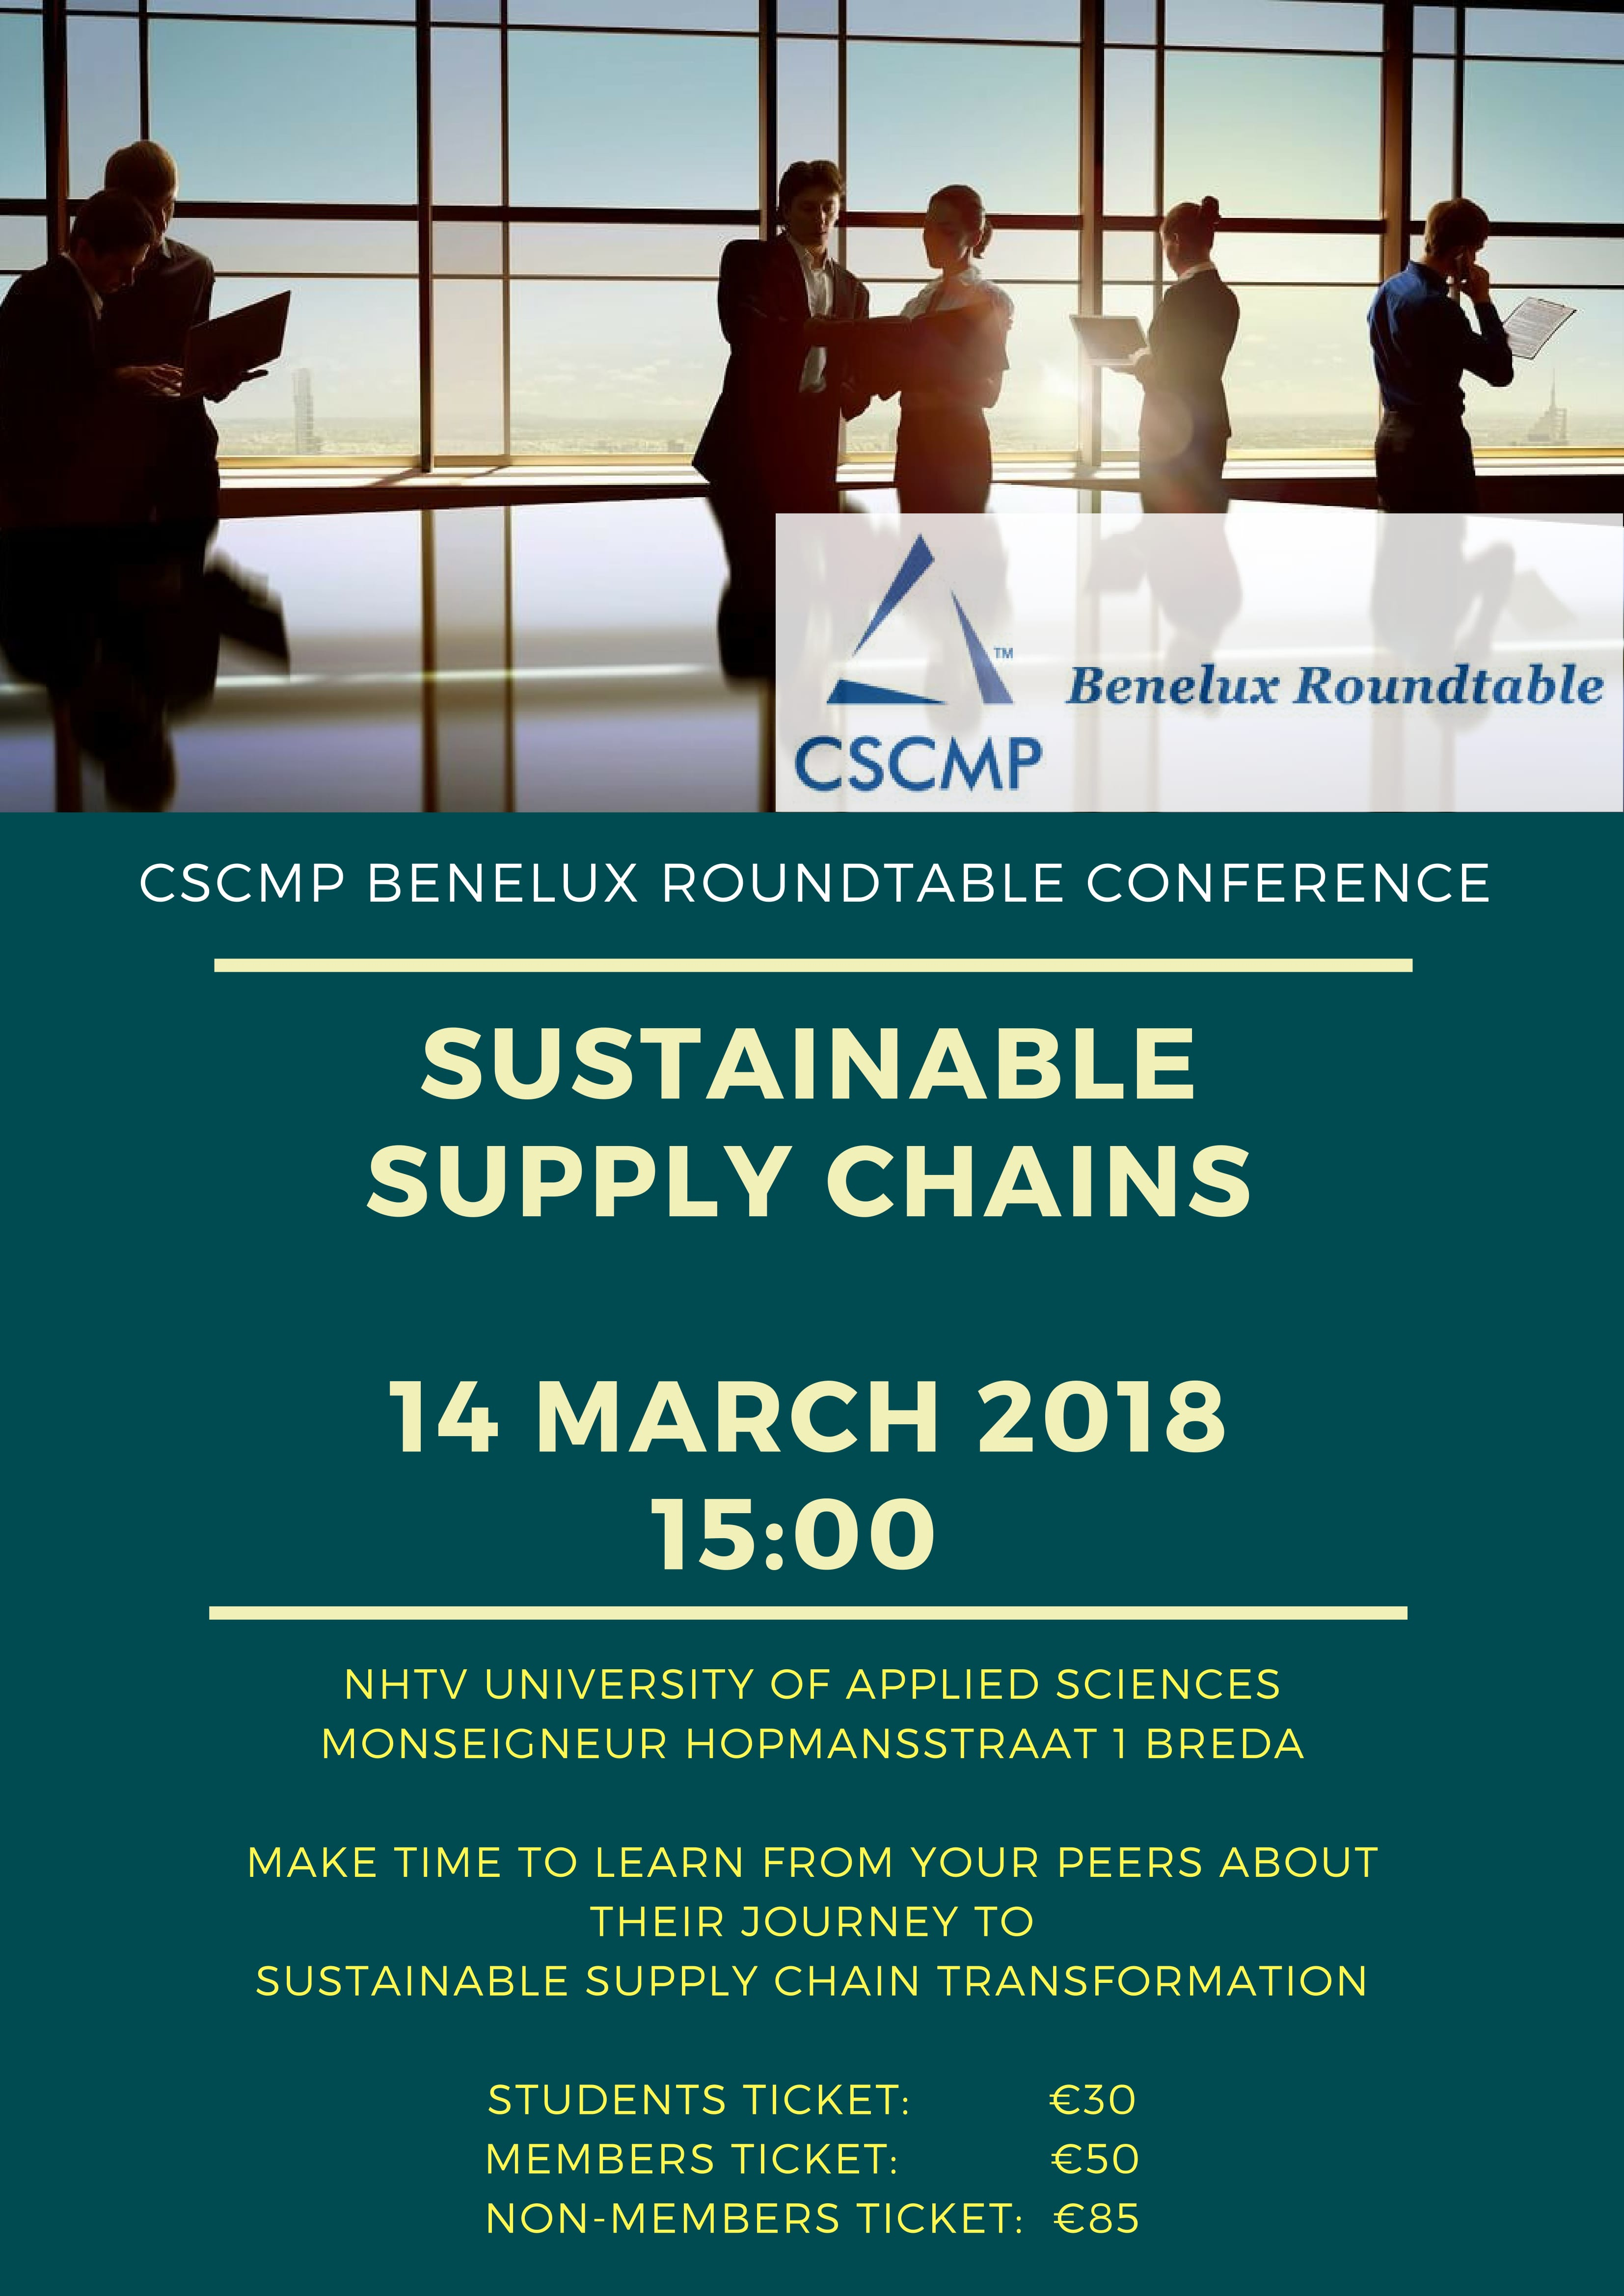 Sustainable Supply Chains Conference